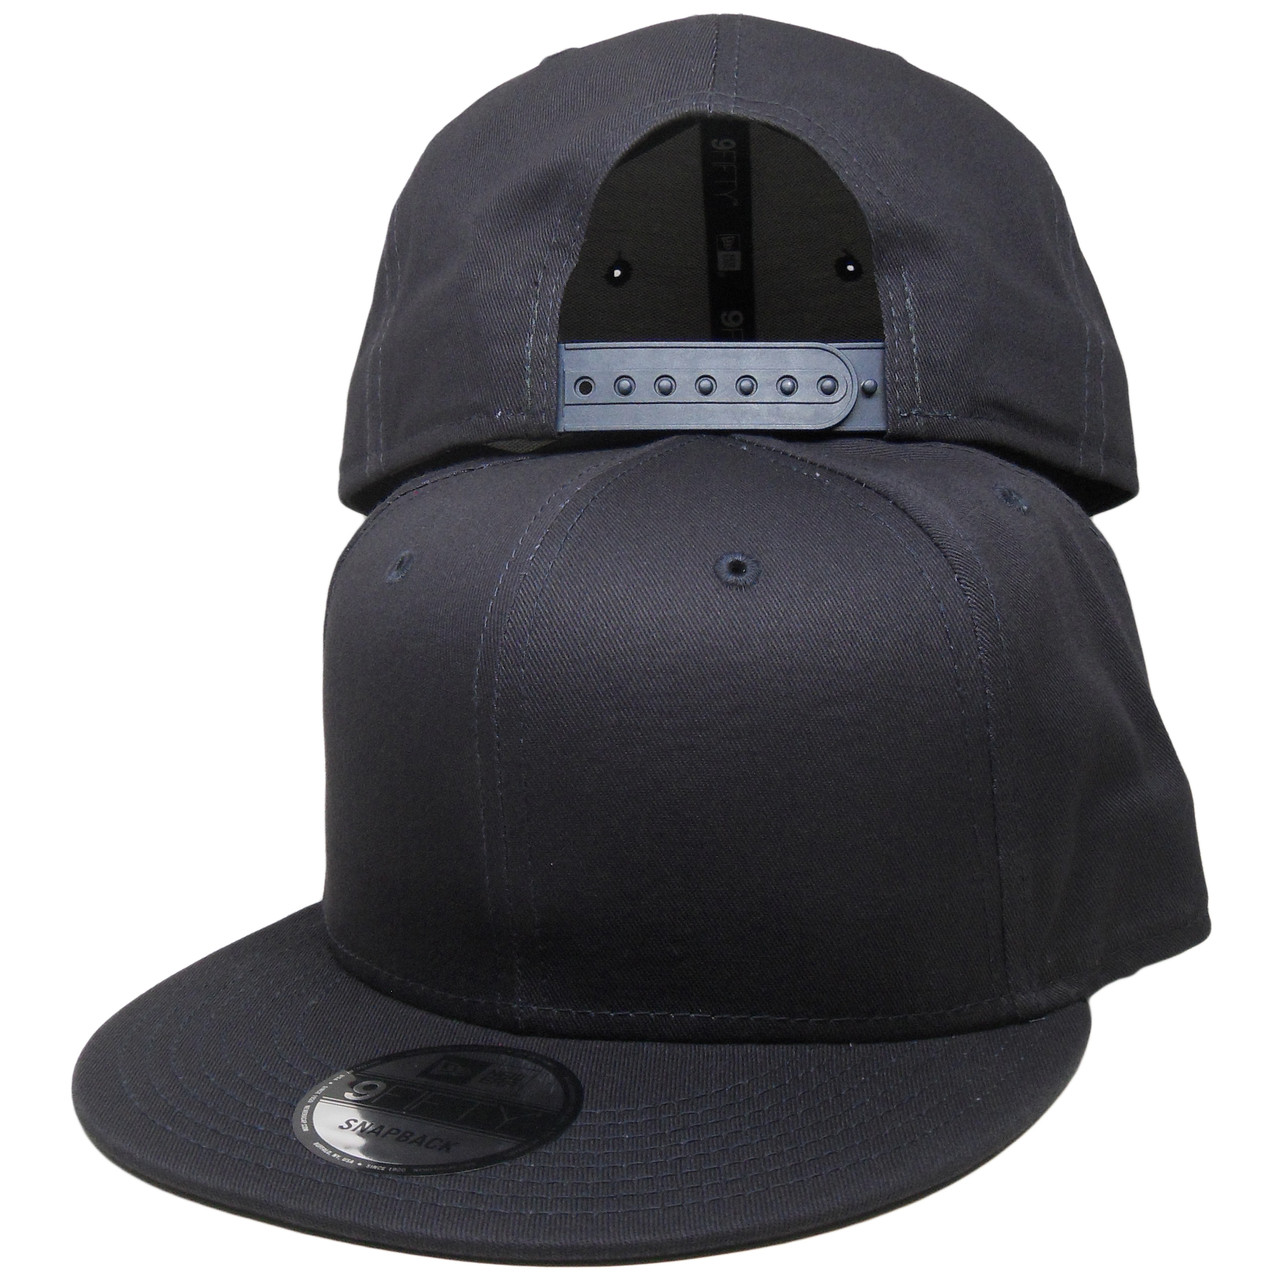 Plain Blank New Era 9Fifty Snapback Hat - All Navy Blue - ECapsUnlimited.com cbd948d6746